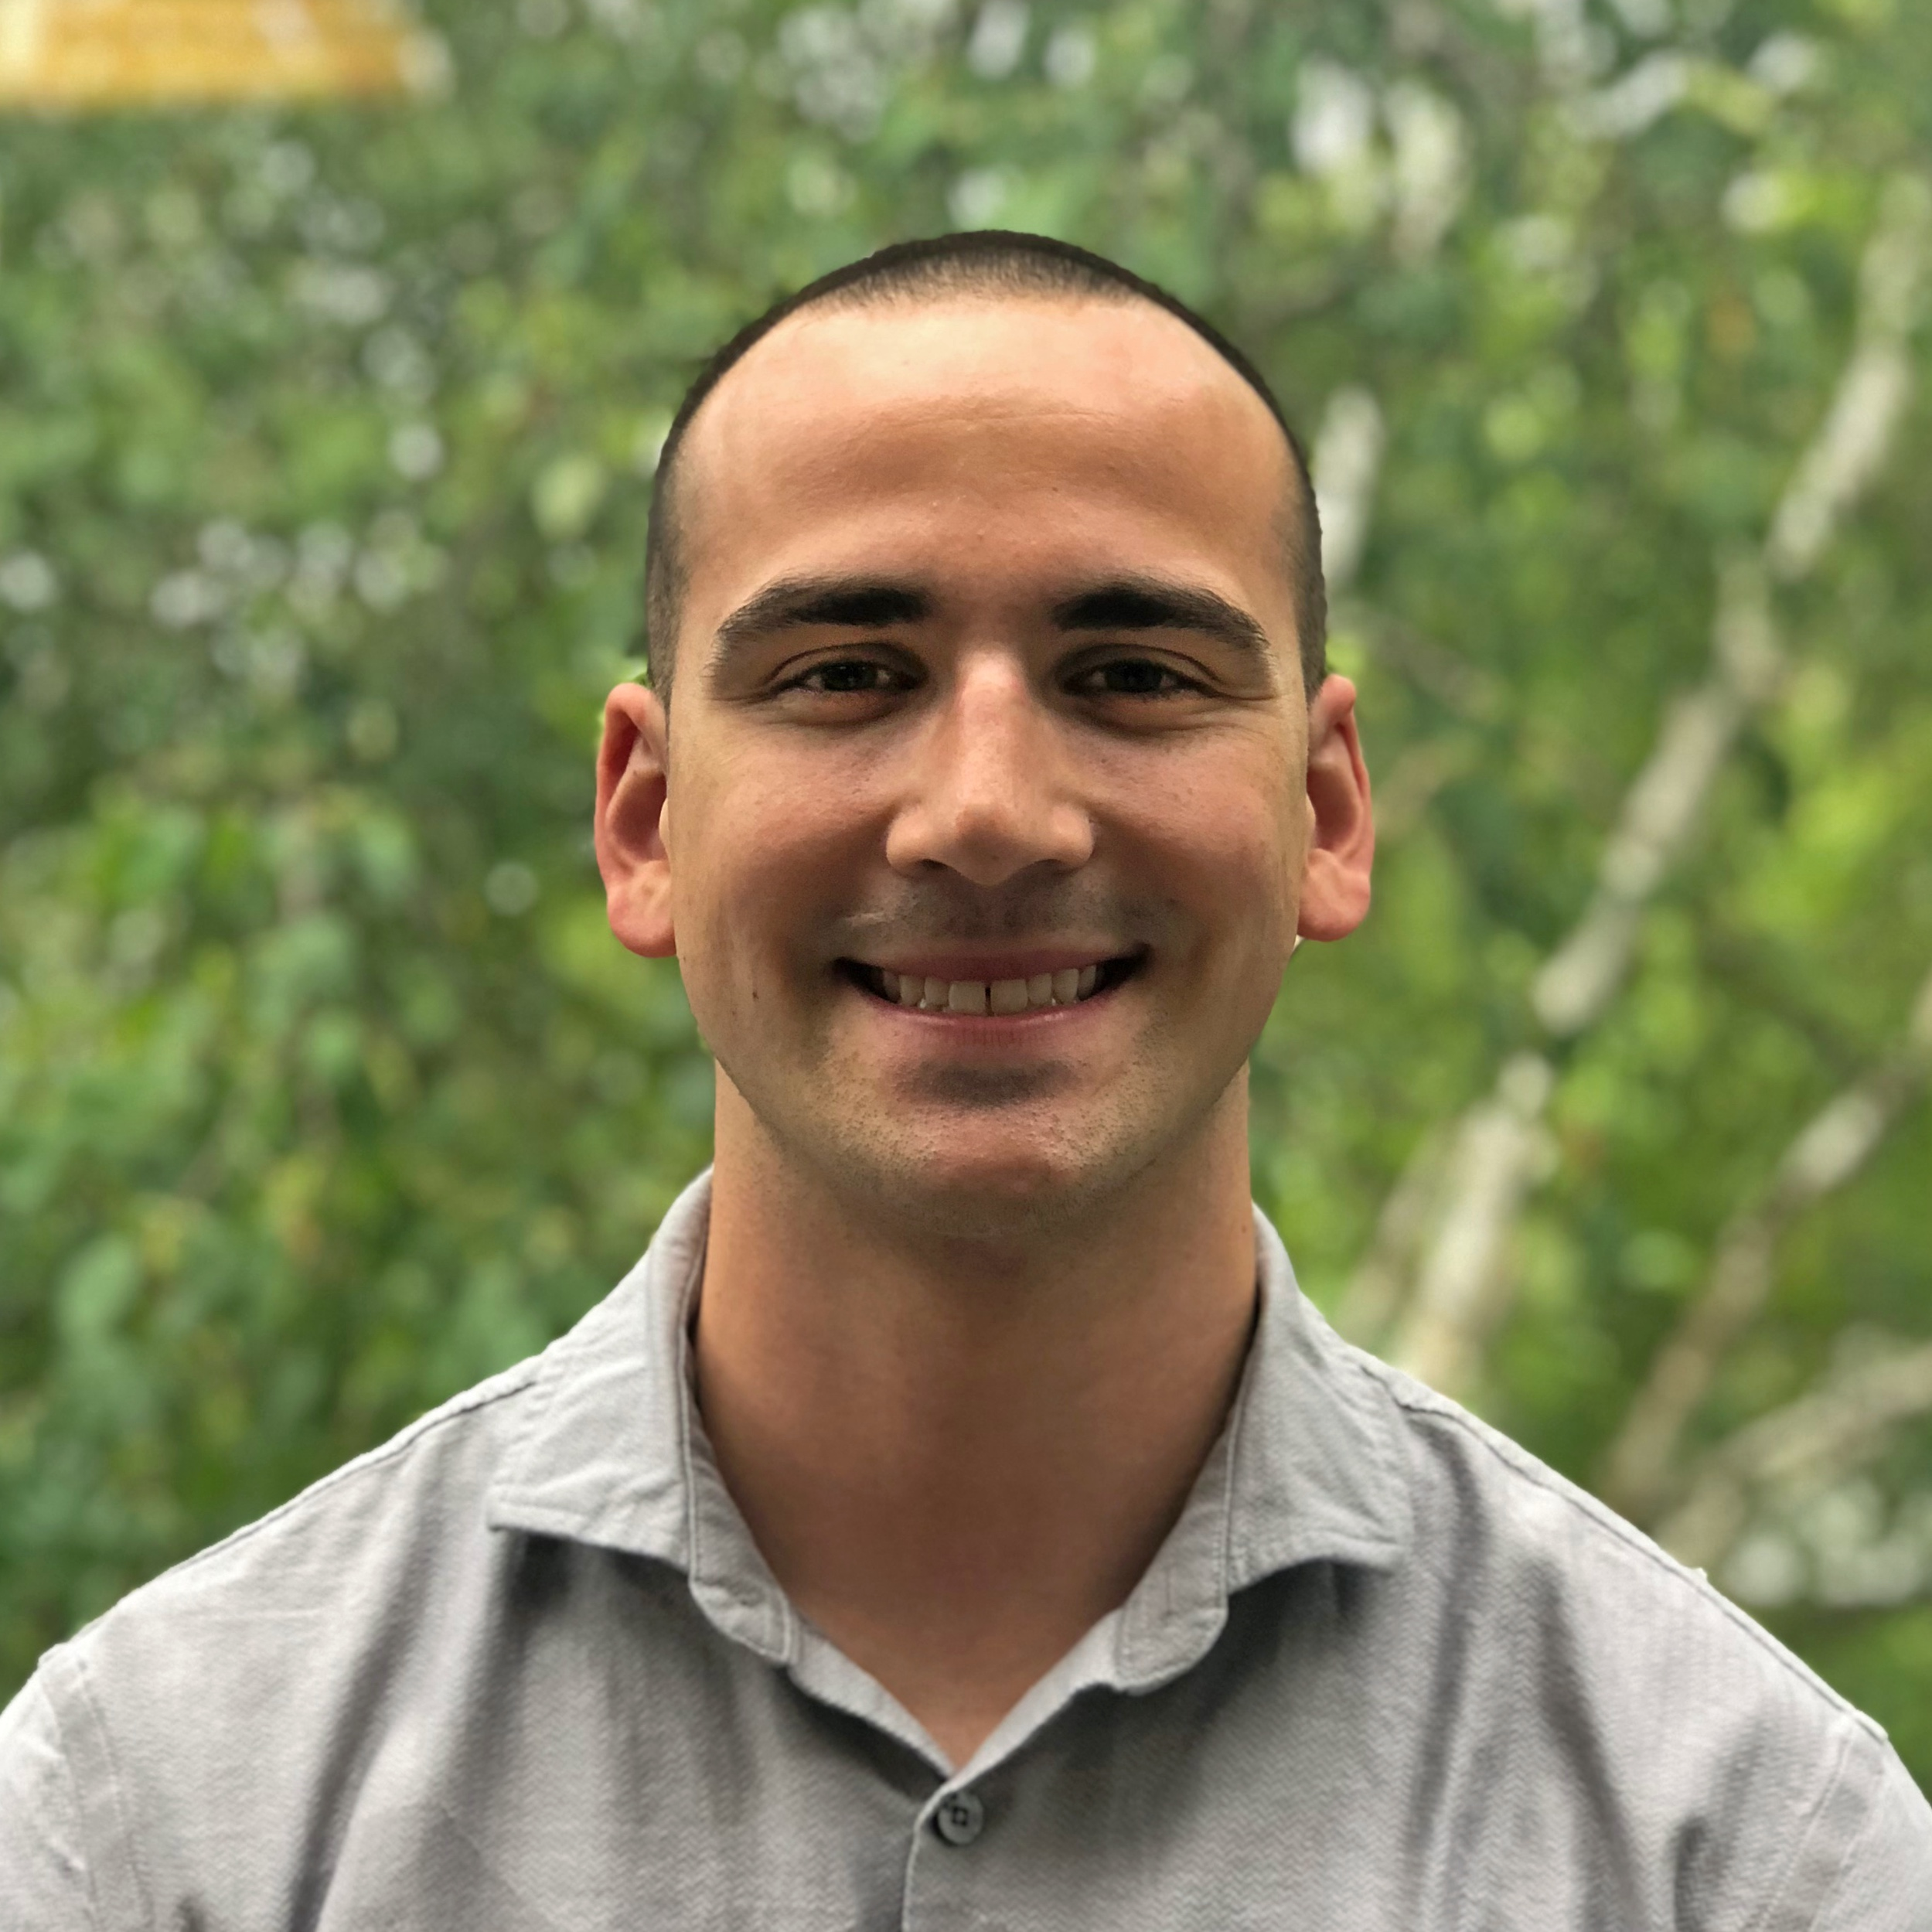 Nick Sautter - Clinical Subjects Coordinator - Nick facilitates patient recruitment and data collection for MCIRCC members' clinical studies as part of the Clinical Research Unit.sauttern@umich.edu